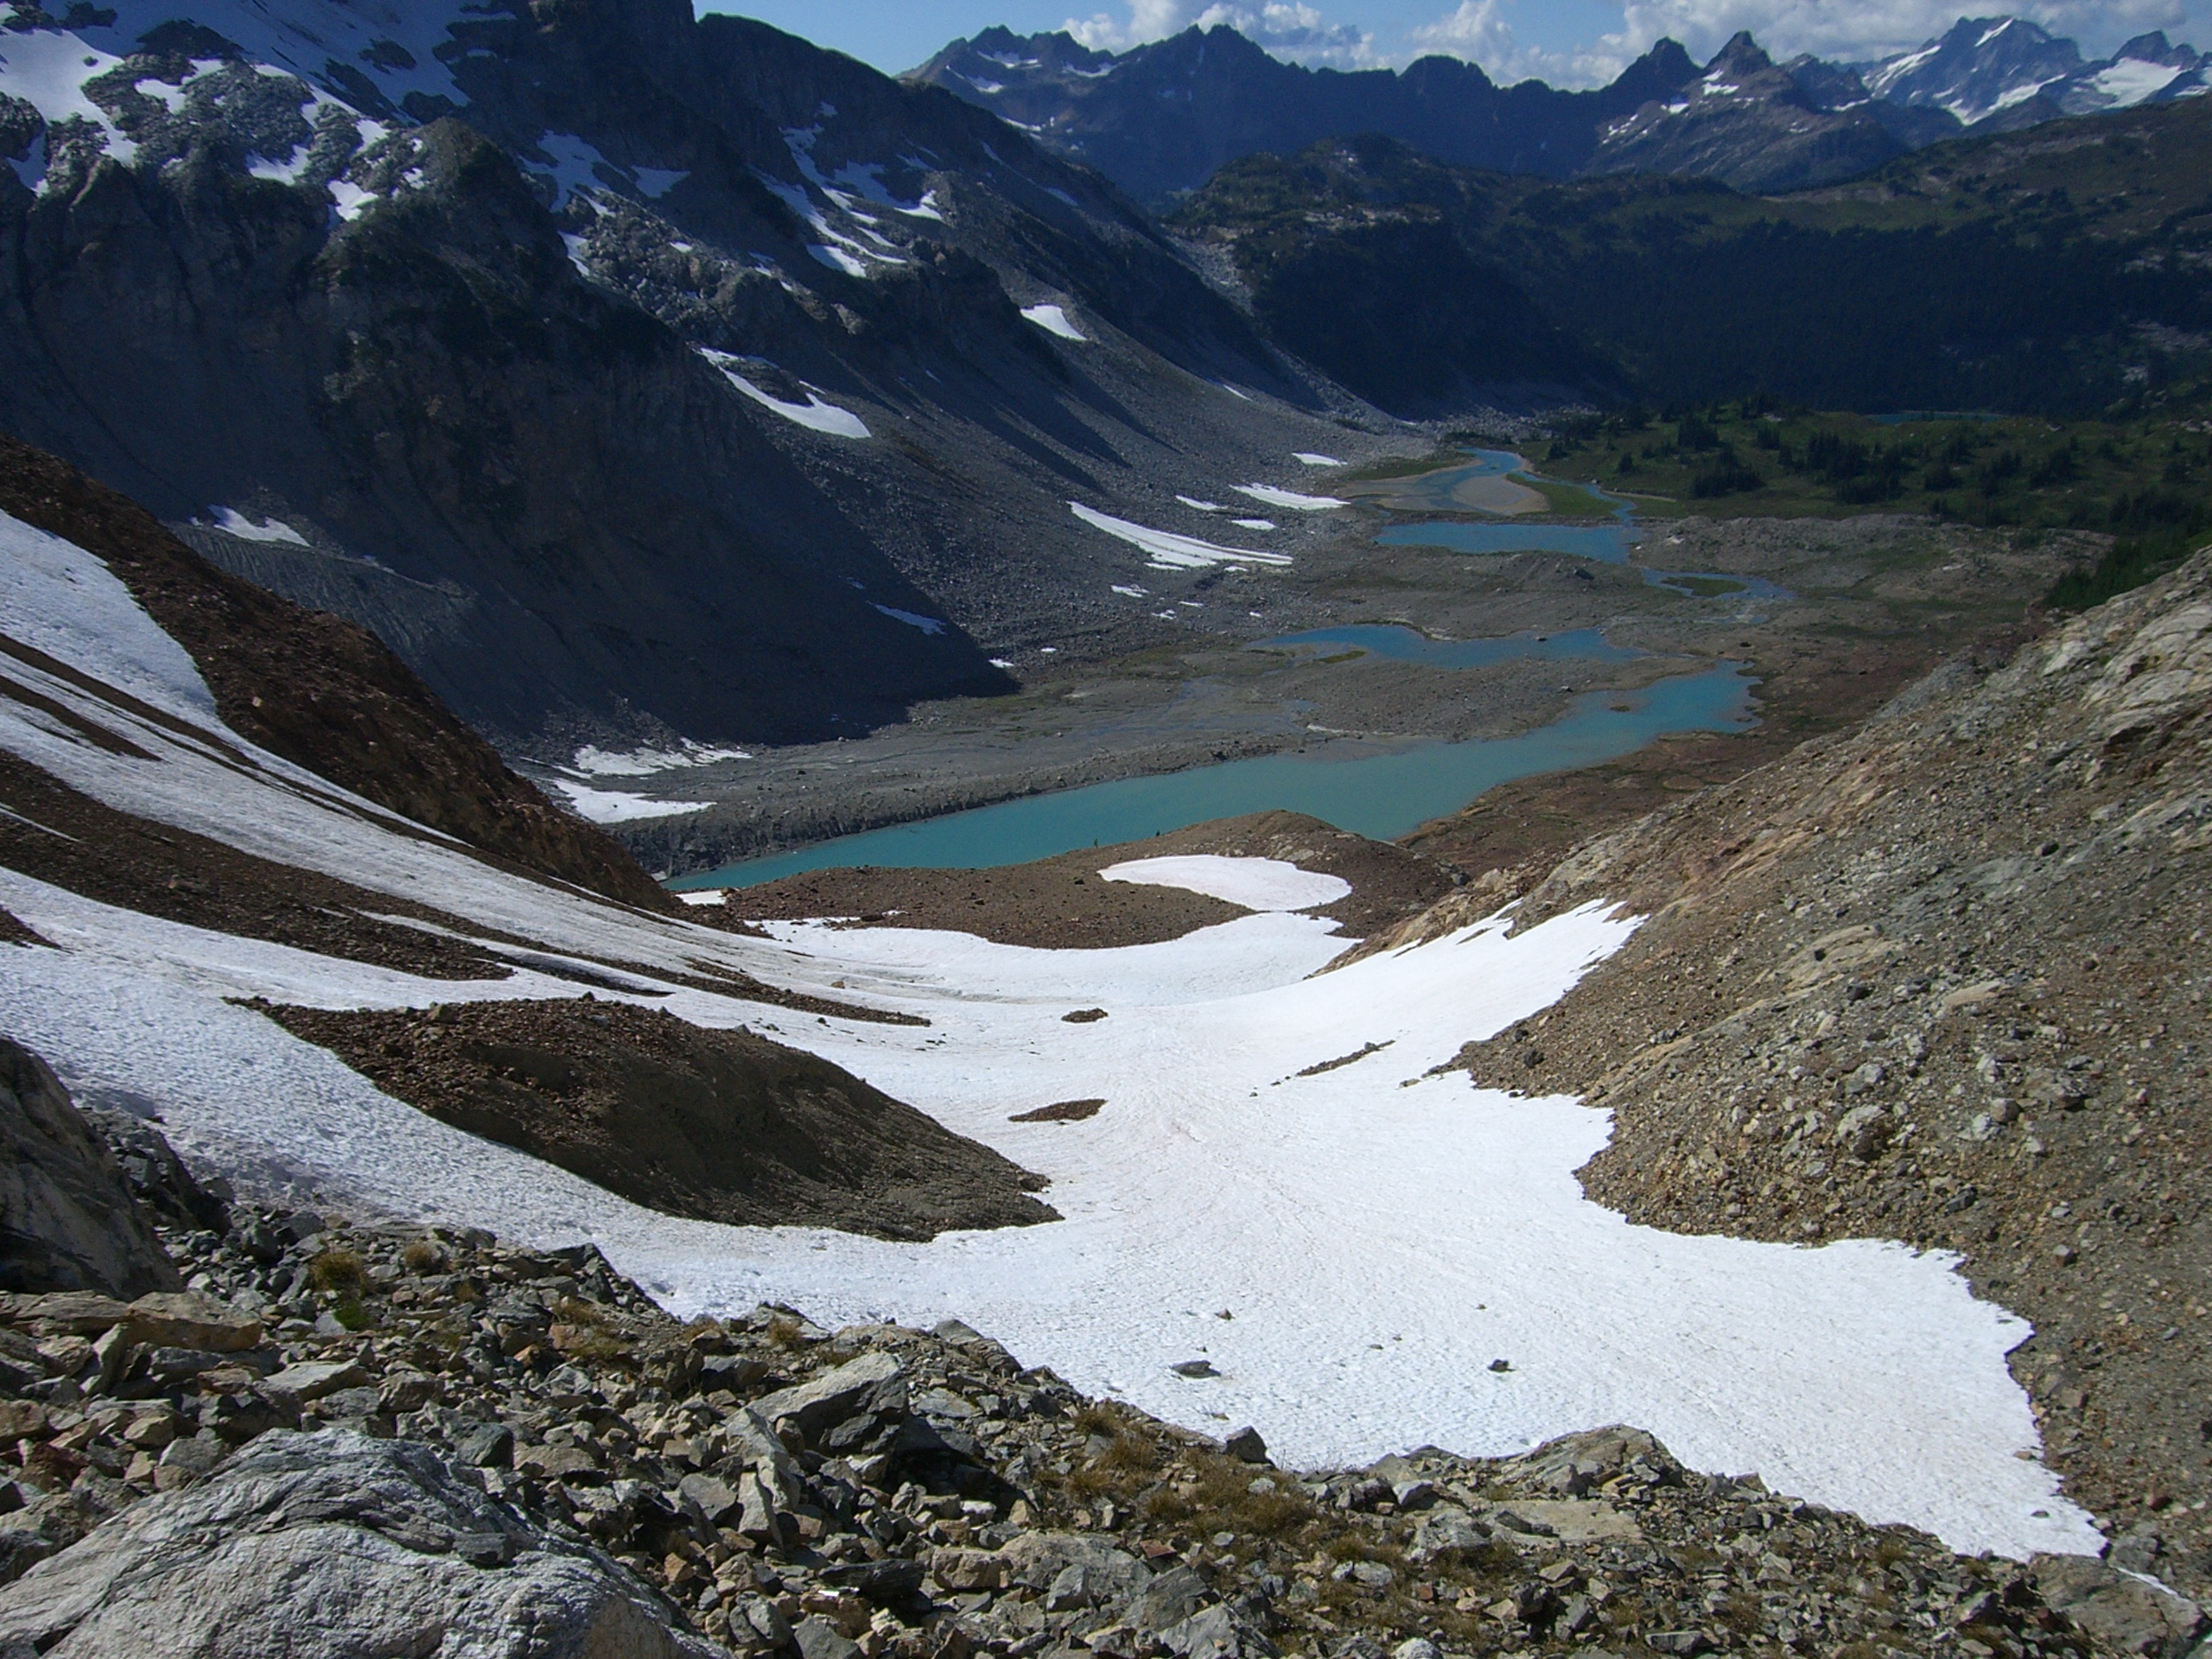 Looking down from Spider Gap at part of Lyman snowfield & glacier as well as Upper Lyman Lake. Saturday 12 August 2006. Foto by William Dudley Bass.